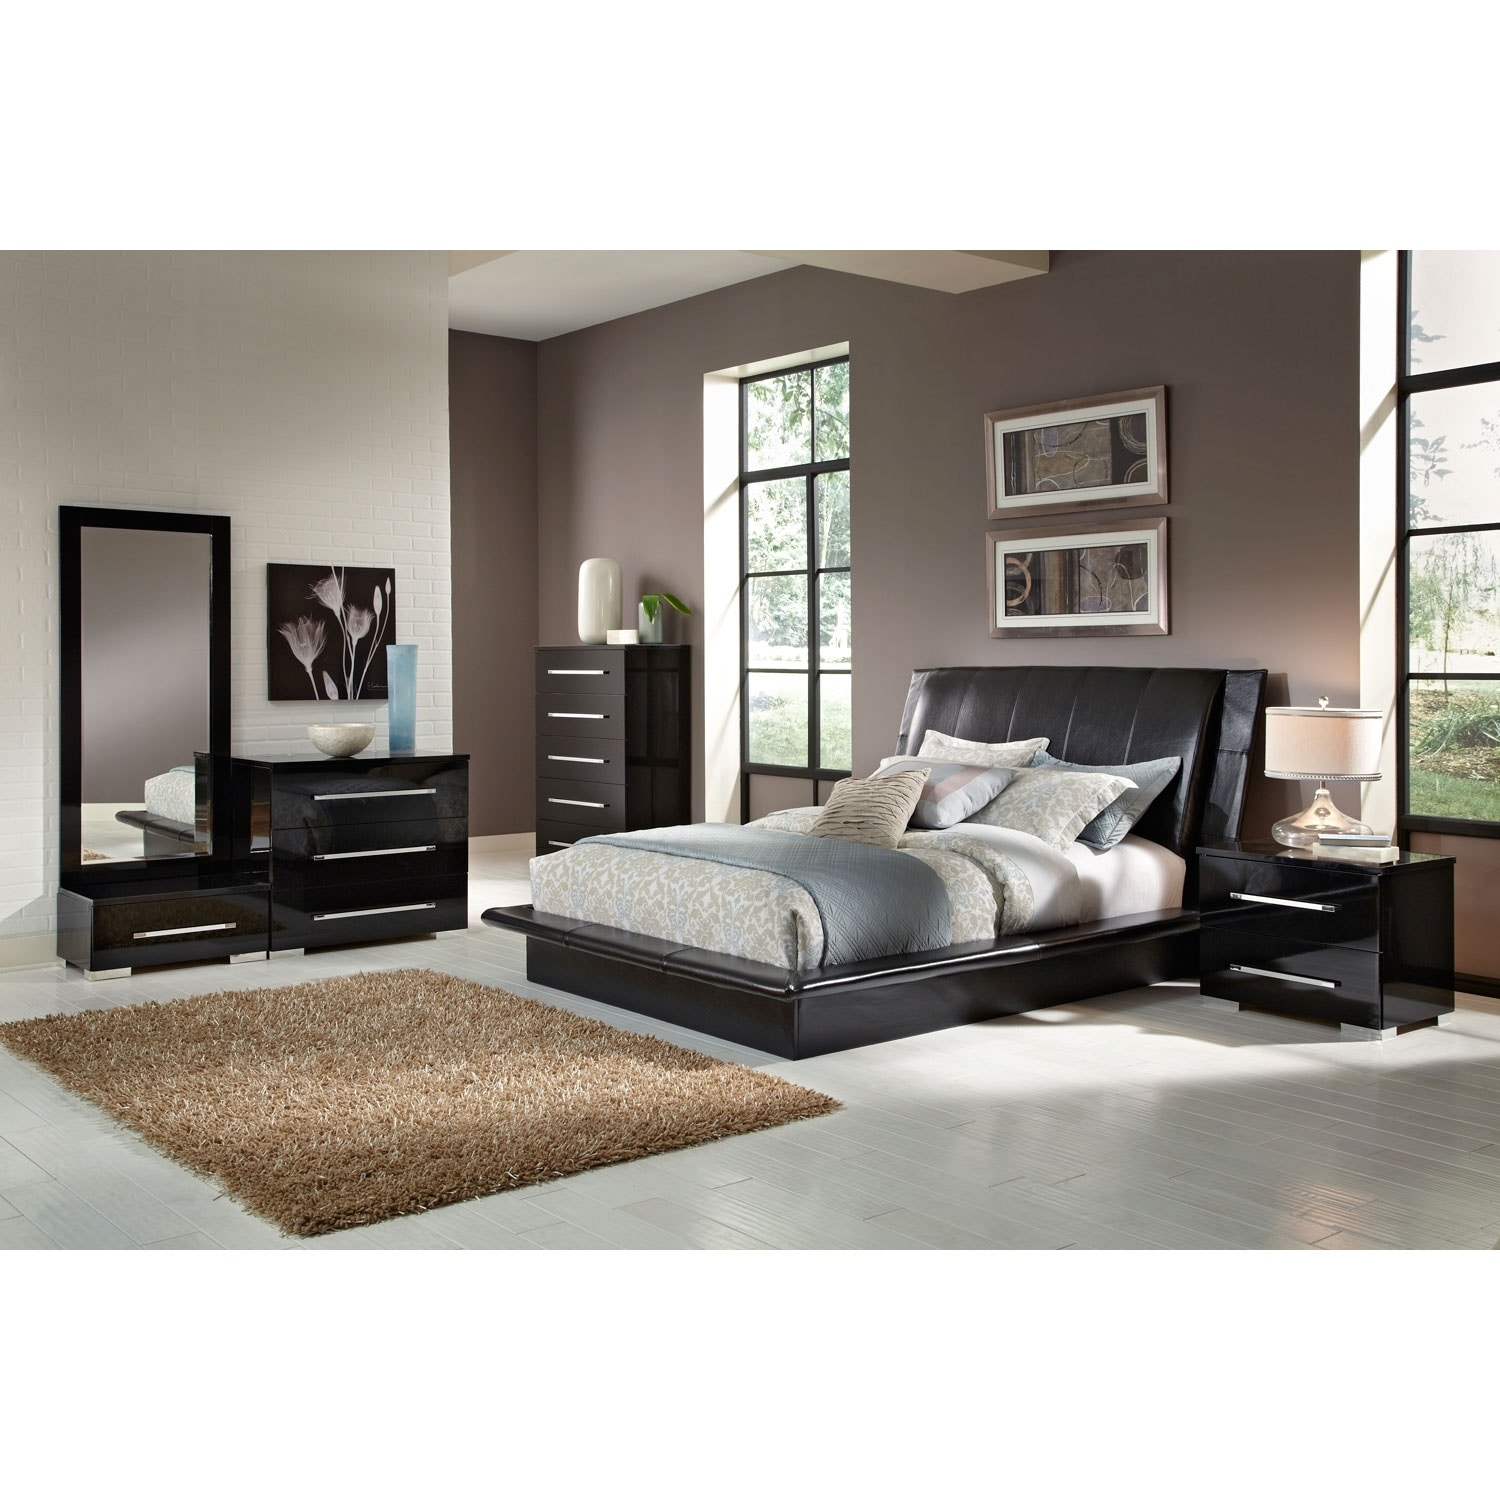 Dimora 7-Piece Queen Upholstered Bedroom Set - Black